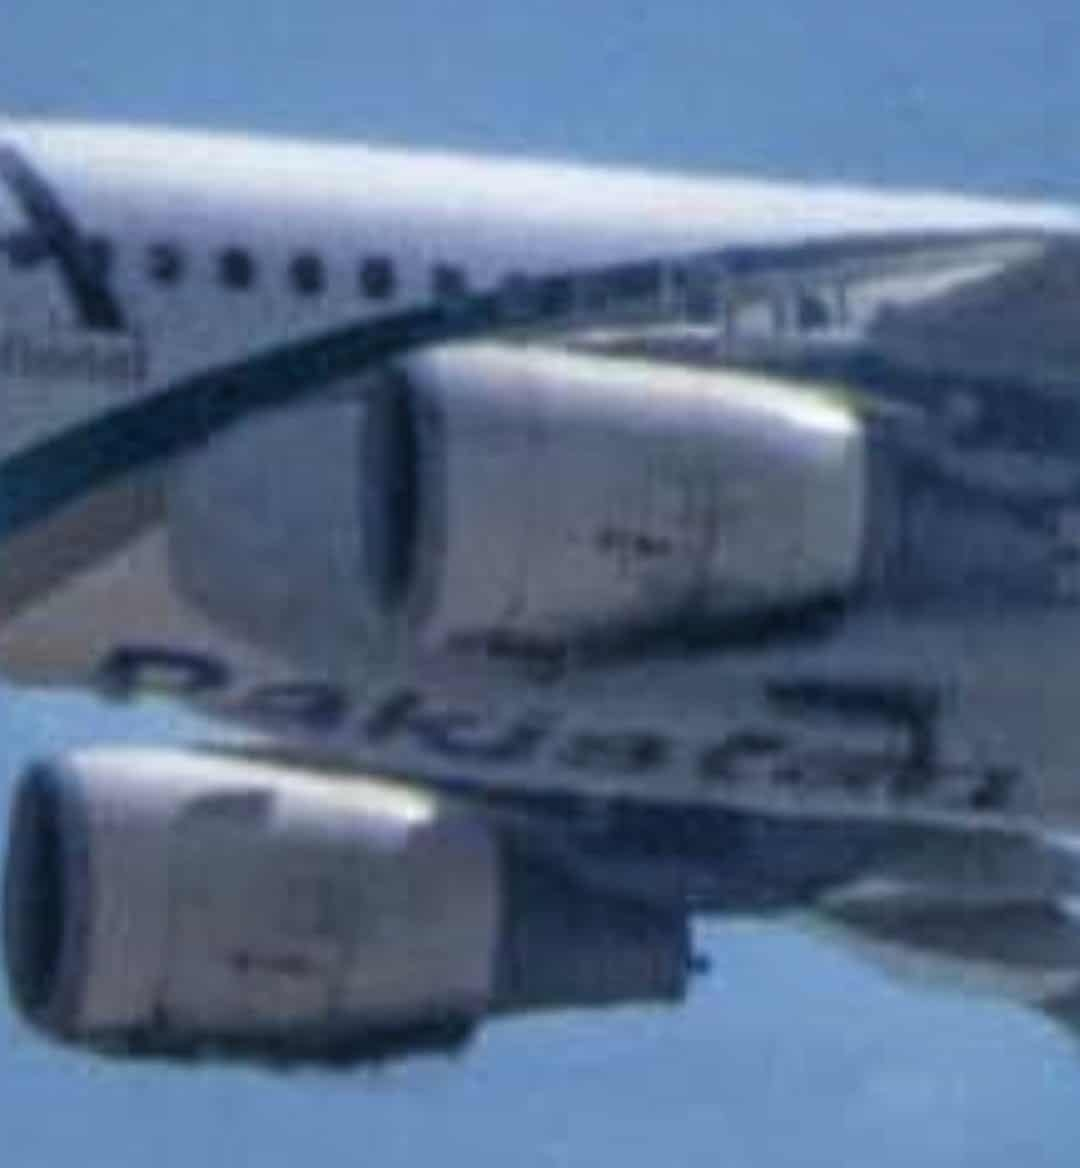 Photos / Images taken moments before PIA plane crash show engines charred due to fire